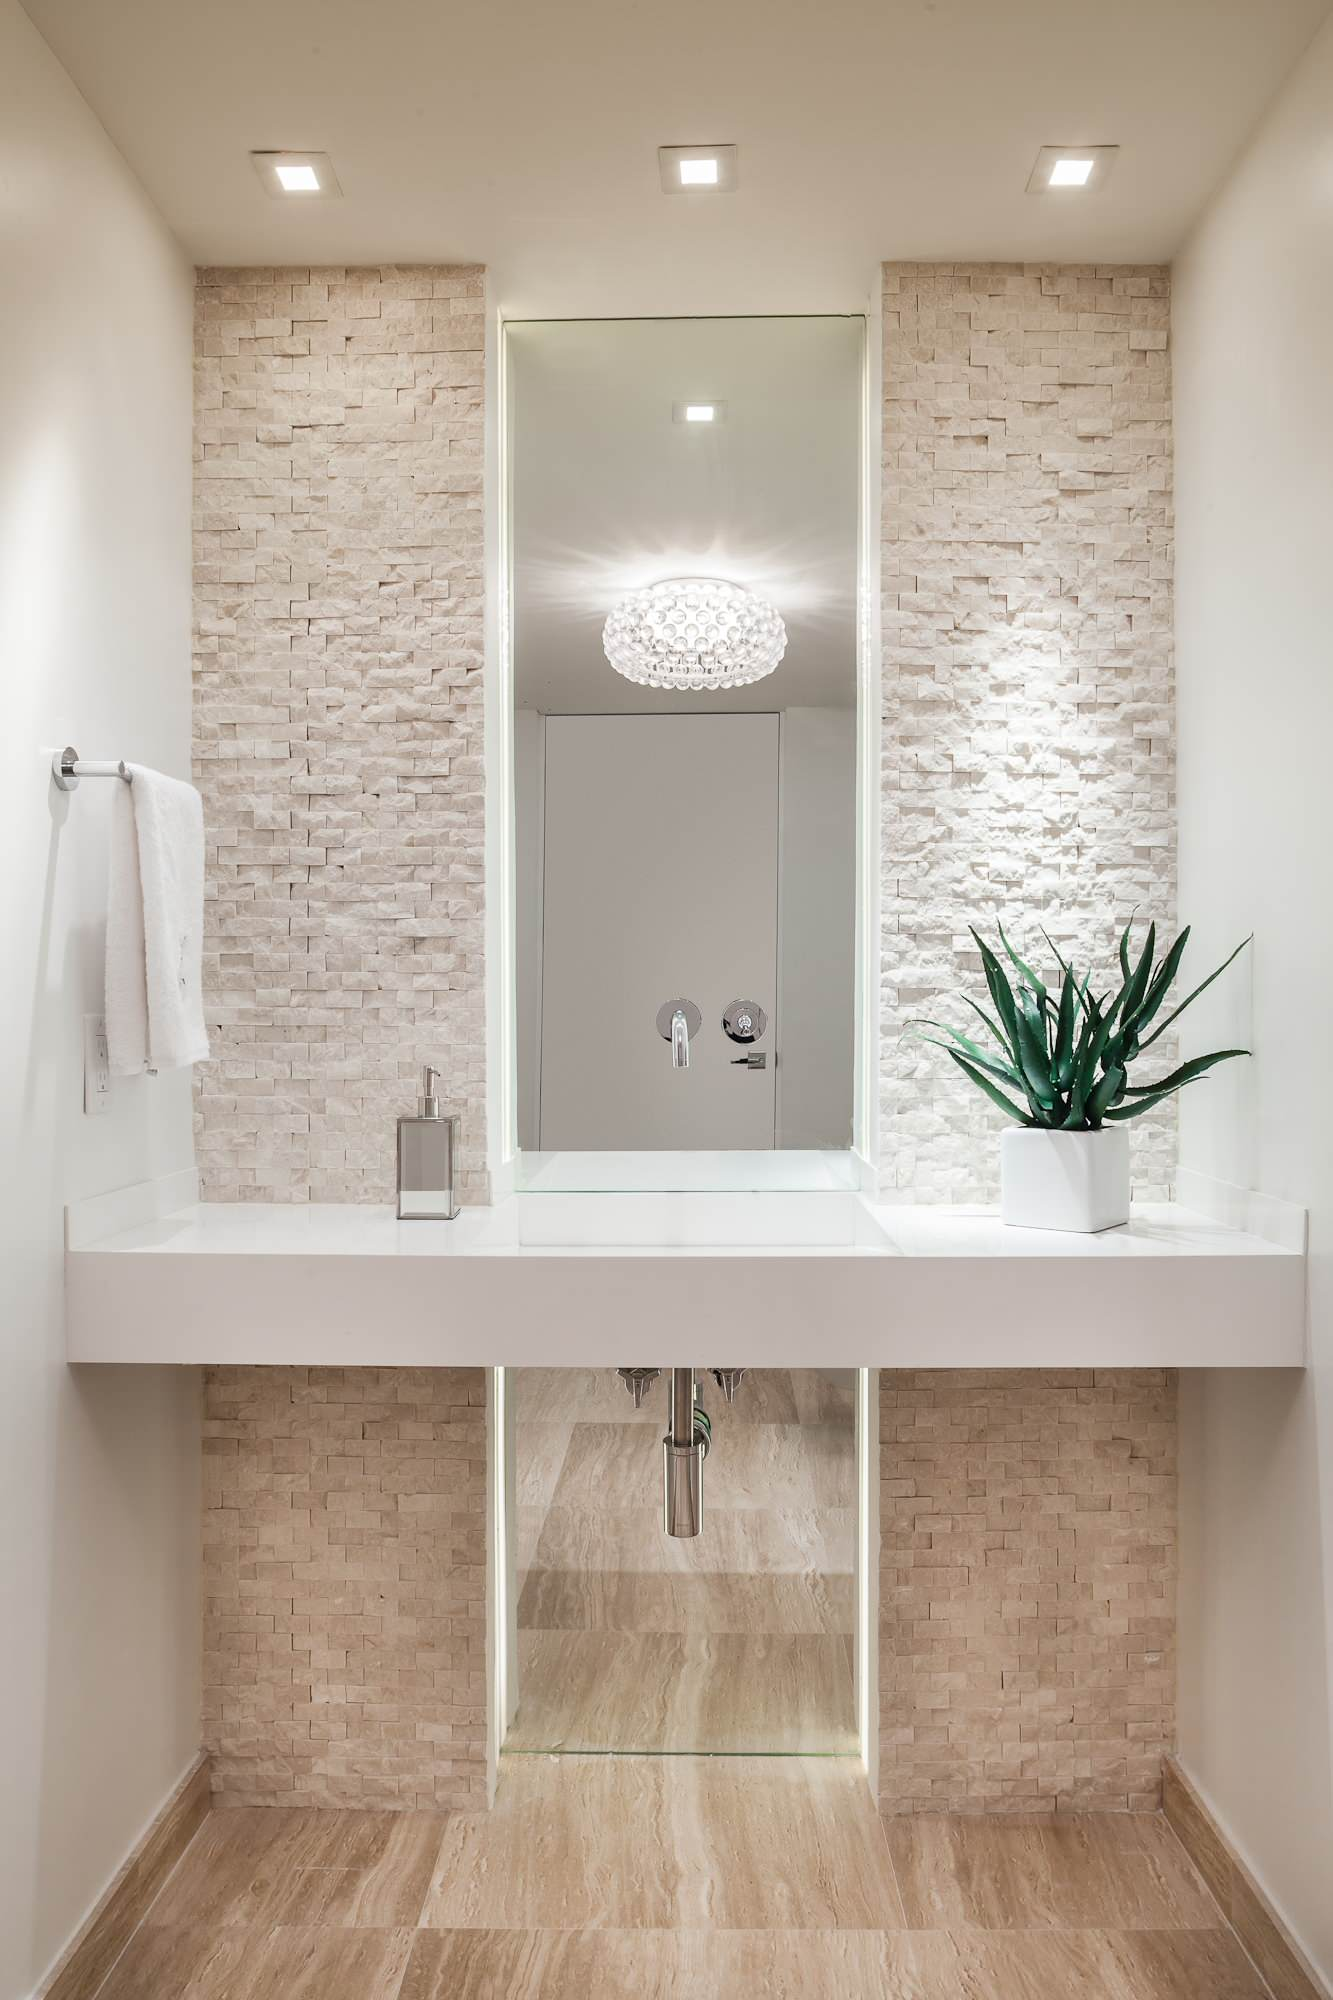 75 Beautiful Beige Tile Powder Room Pictures Ideas January 2021 Houzz